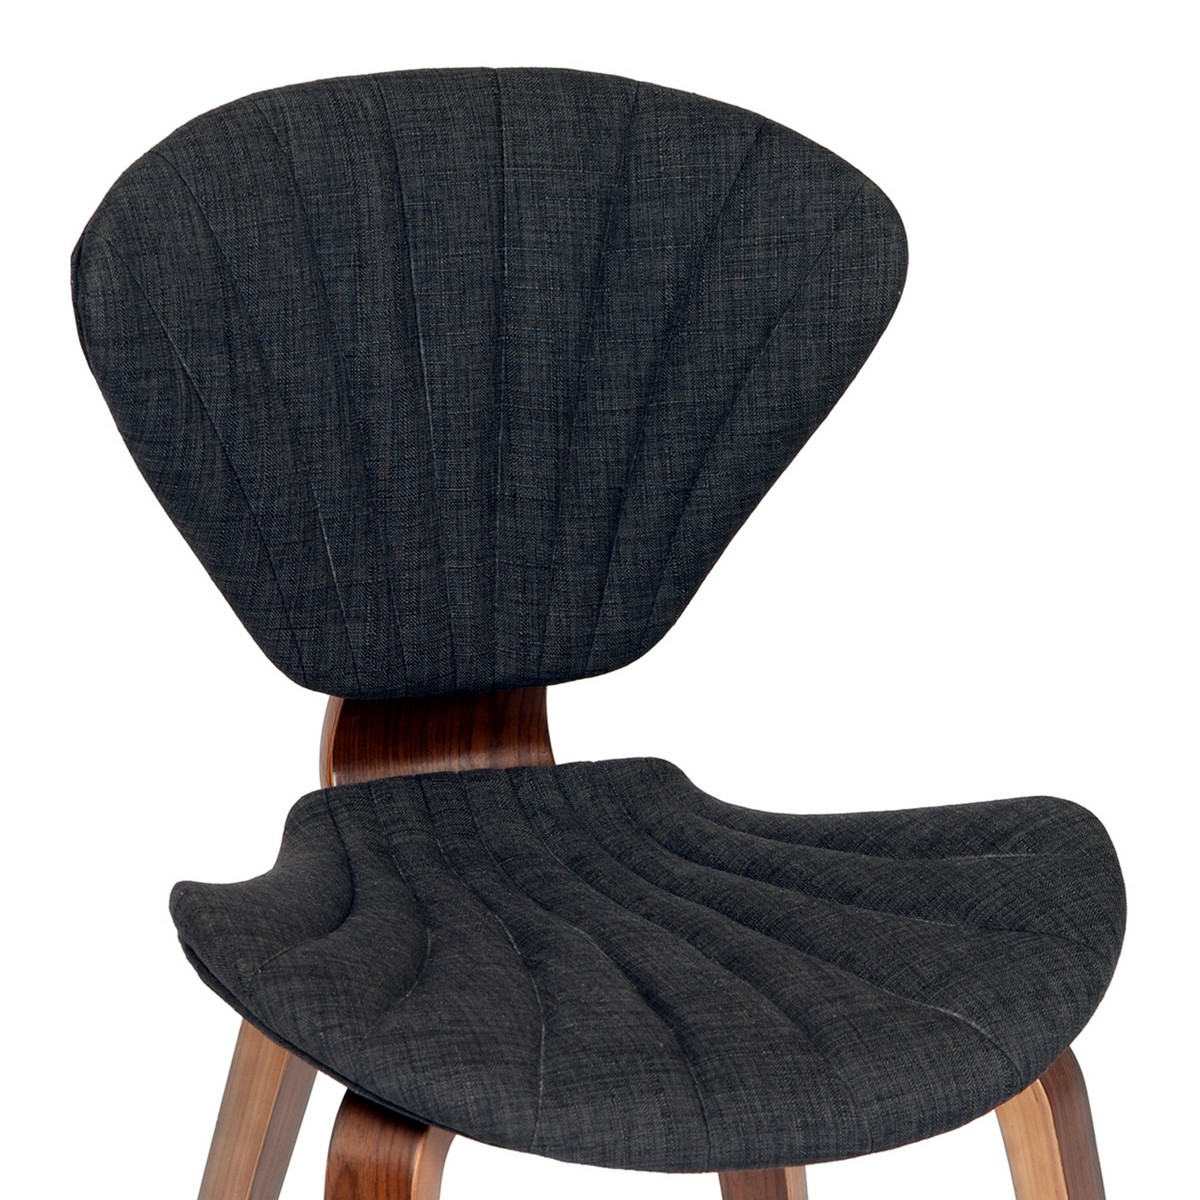 Armen Living Lisa Modern Chair In Charcoal Fabric and Walnut Wood